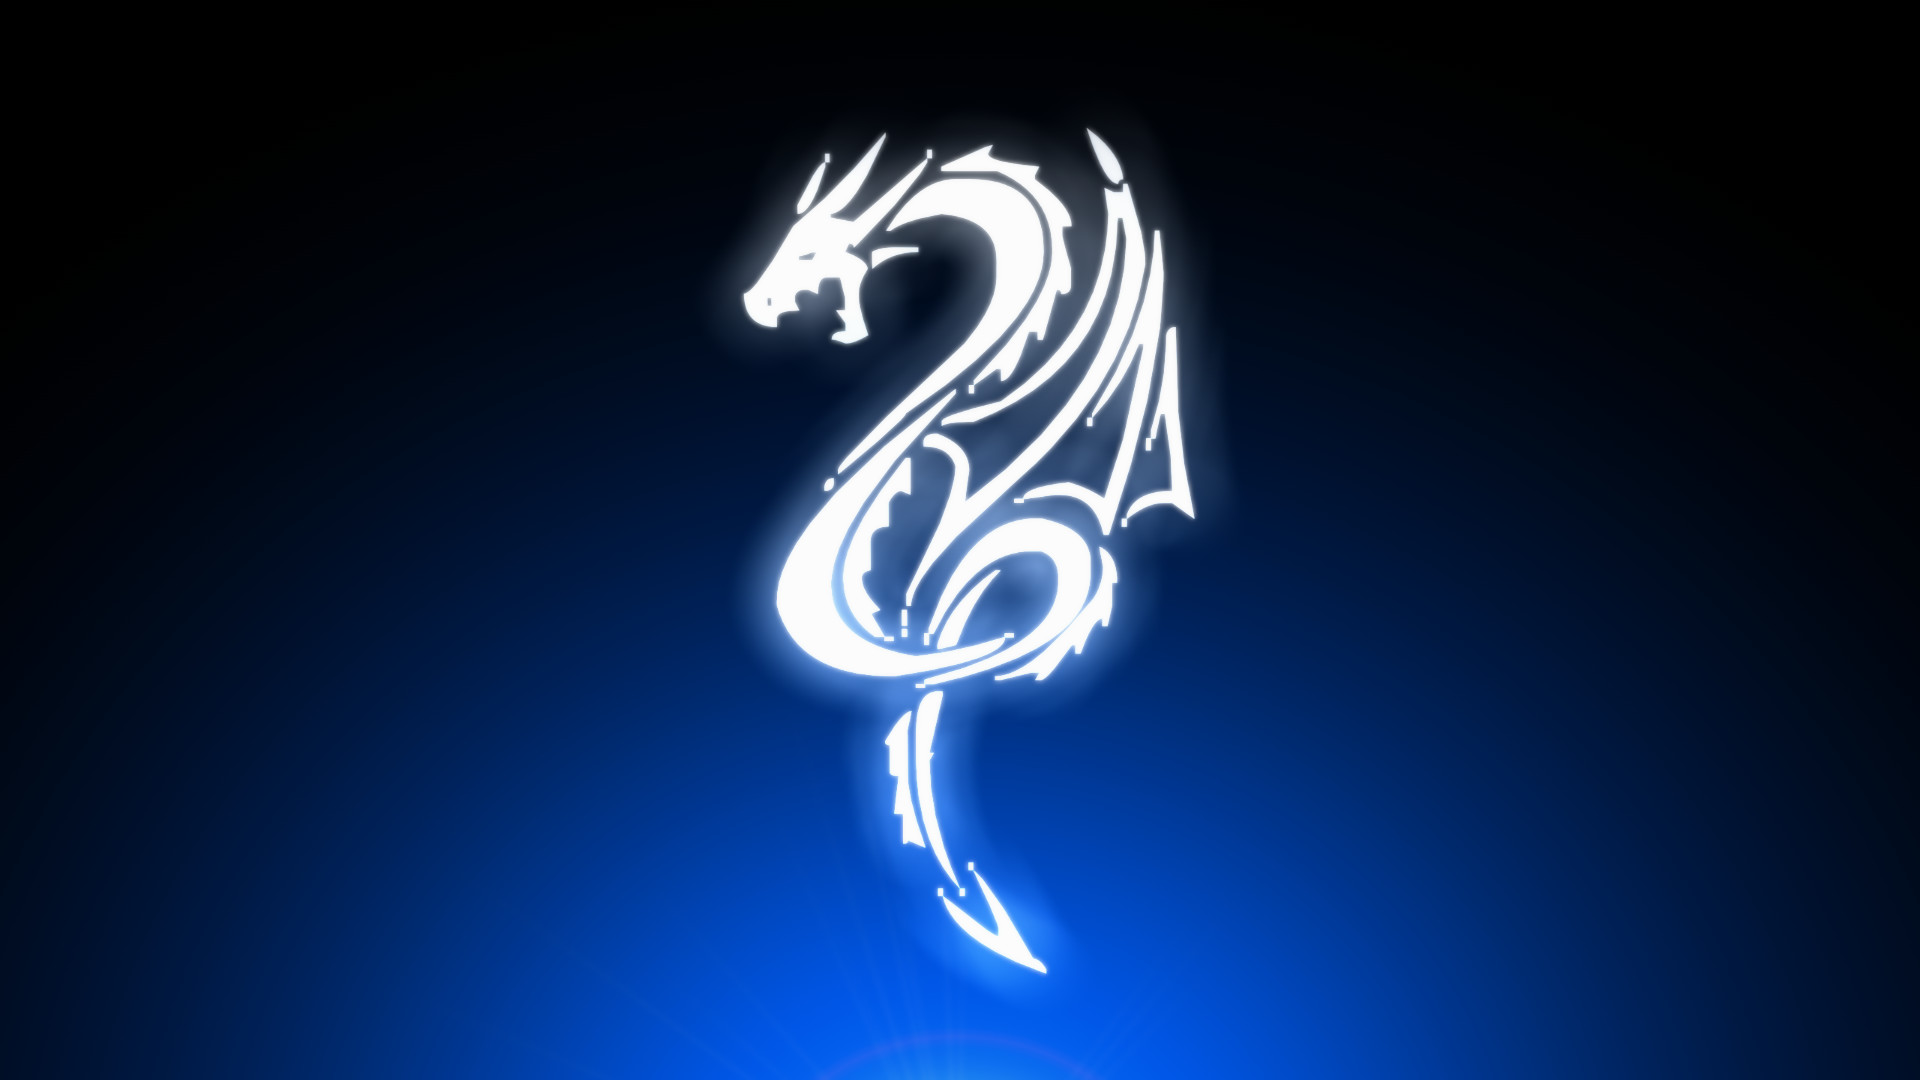 … digitalart wallpapers, blue wallpapers. White Dragon by Extraterrien on  DeviantArt